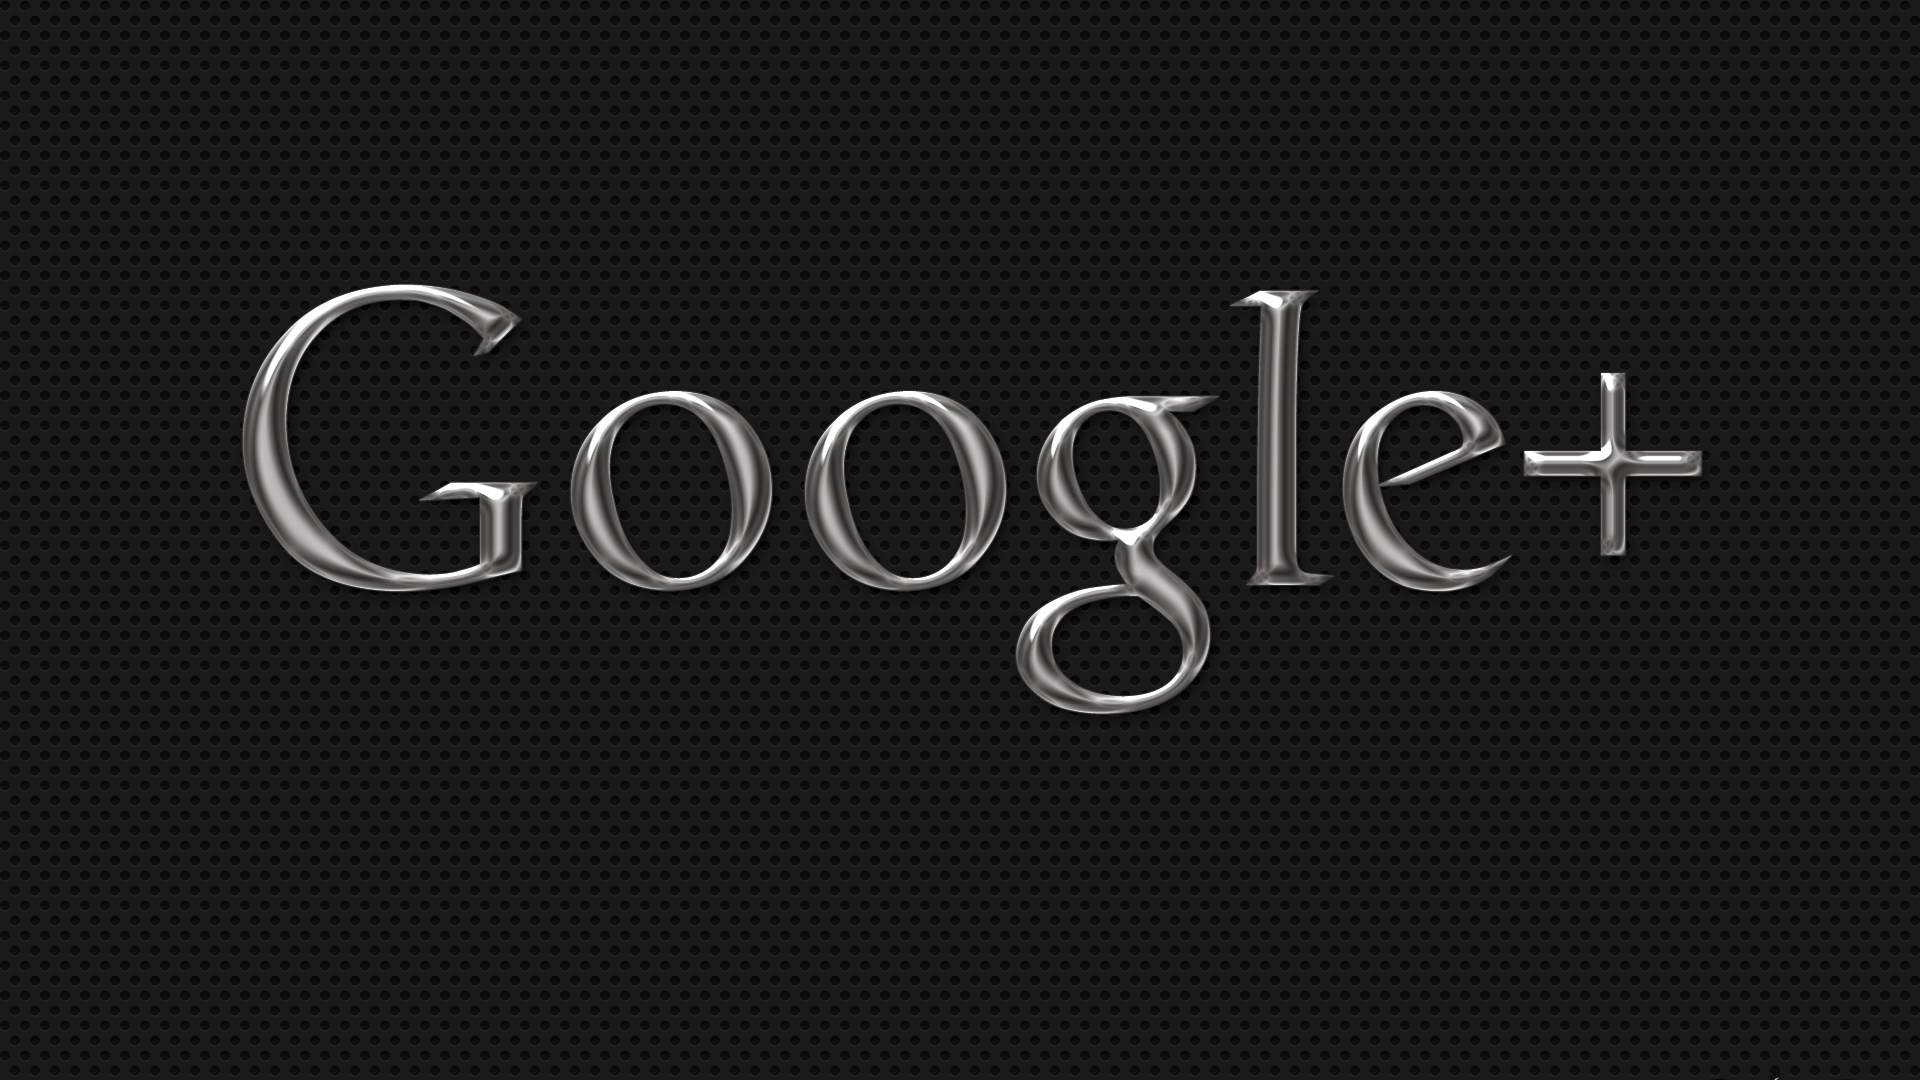 google-+-best-search-engine-hd-wallpapers-free